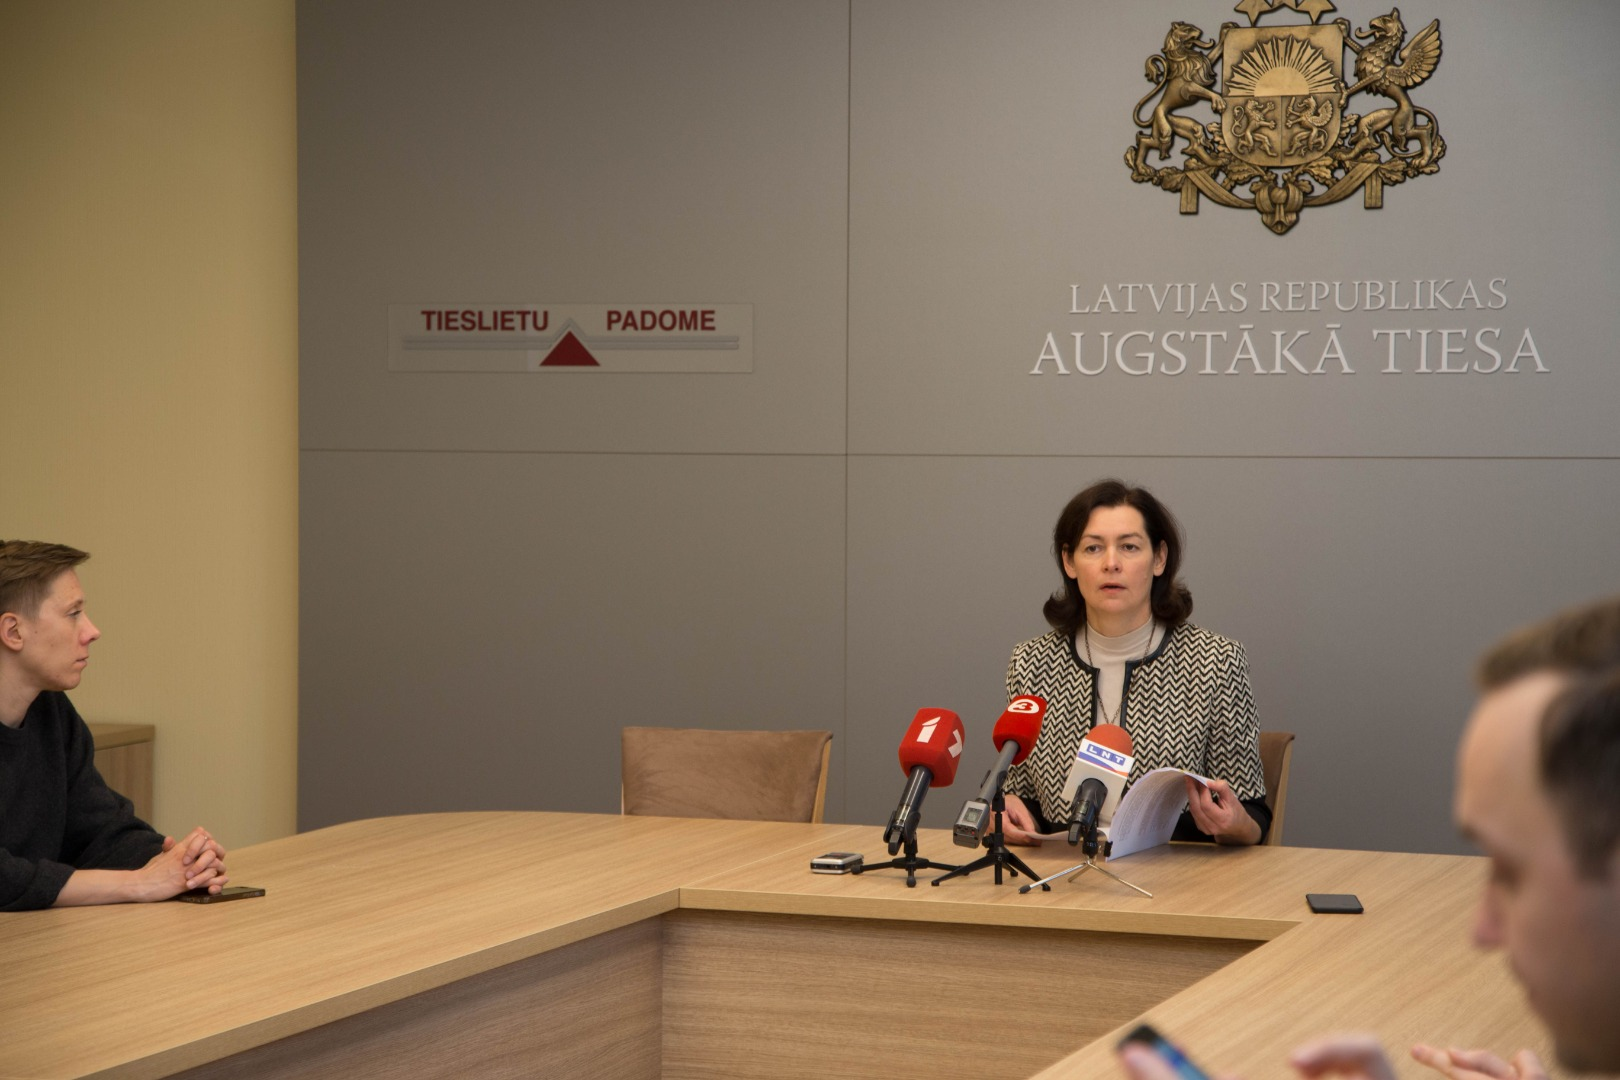 18.10.2019. The Plenary Session of the Supreme Court heard and discussed Senator Marik Senkane's report on the examination of the grounds for dismissing the Prosecutor General, heard the Prosecutor General and the Minister of Justice and found that there were no grounds for dismissing Prosecutor General Eriks Kalnmeiers. The decision to carry out the examination of the grounds for dismissing the Prosecutor General was taken by the Chief Justice of the Supreme Court at the request of 39 members of the Saeima (Parliament). Senator Marika Senkane was mandated to verify the facts set out in the deputies' request.